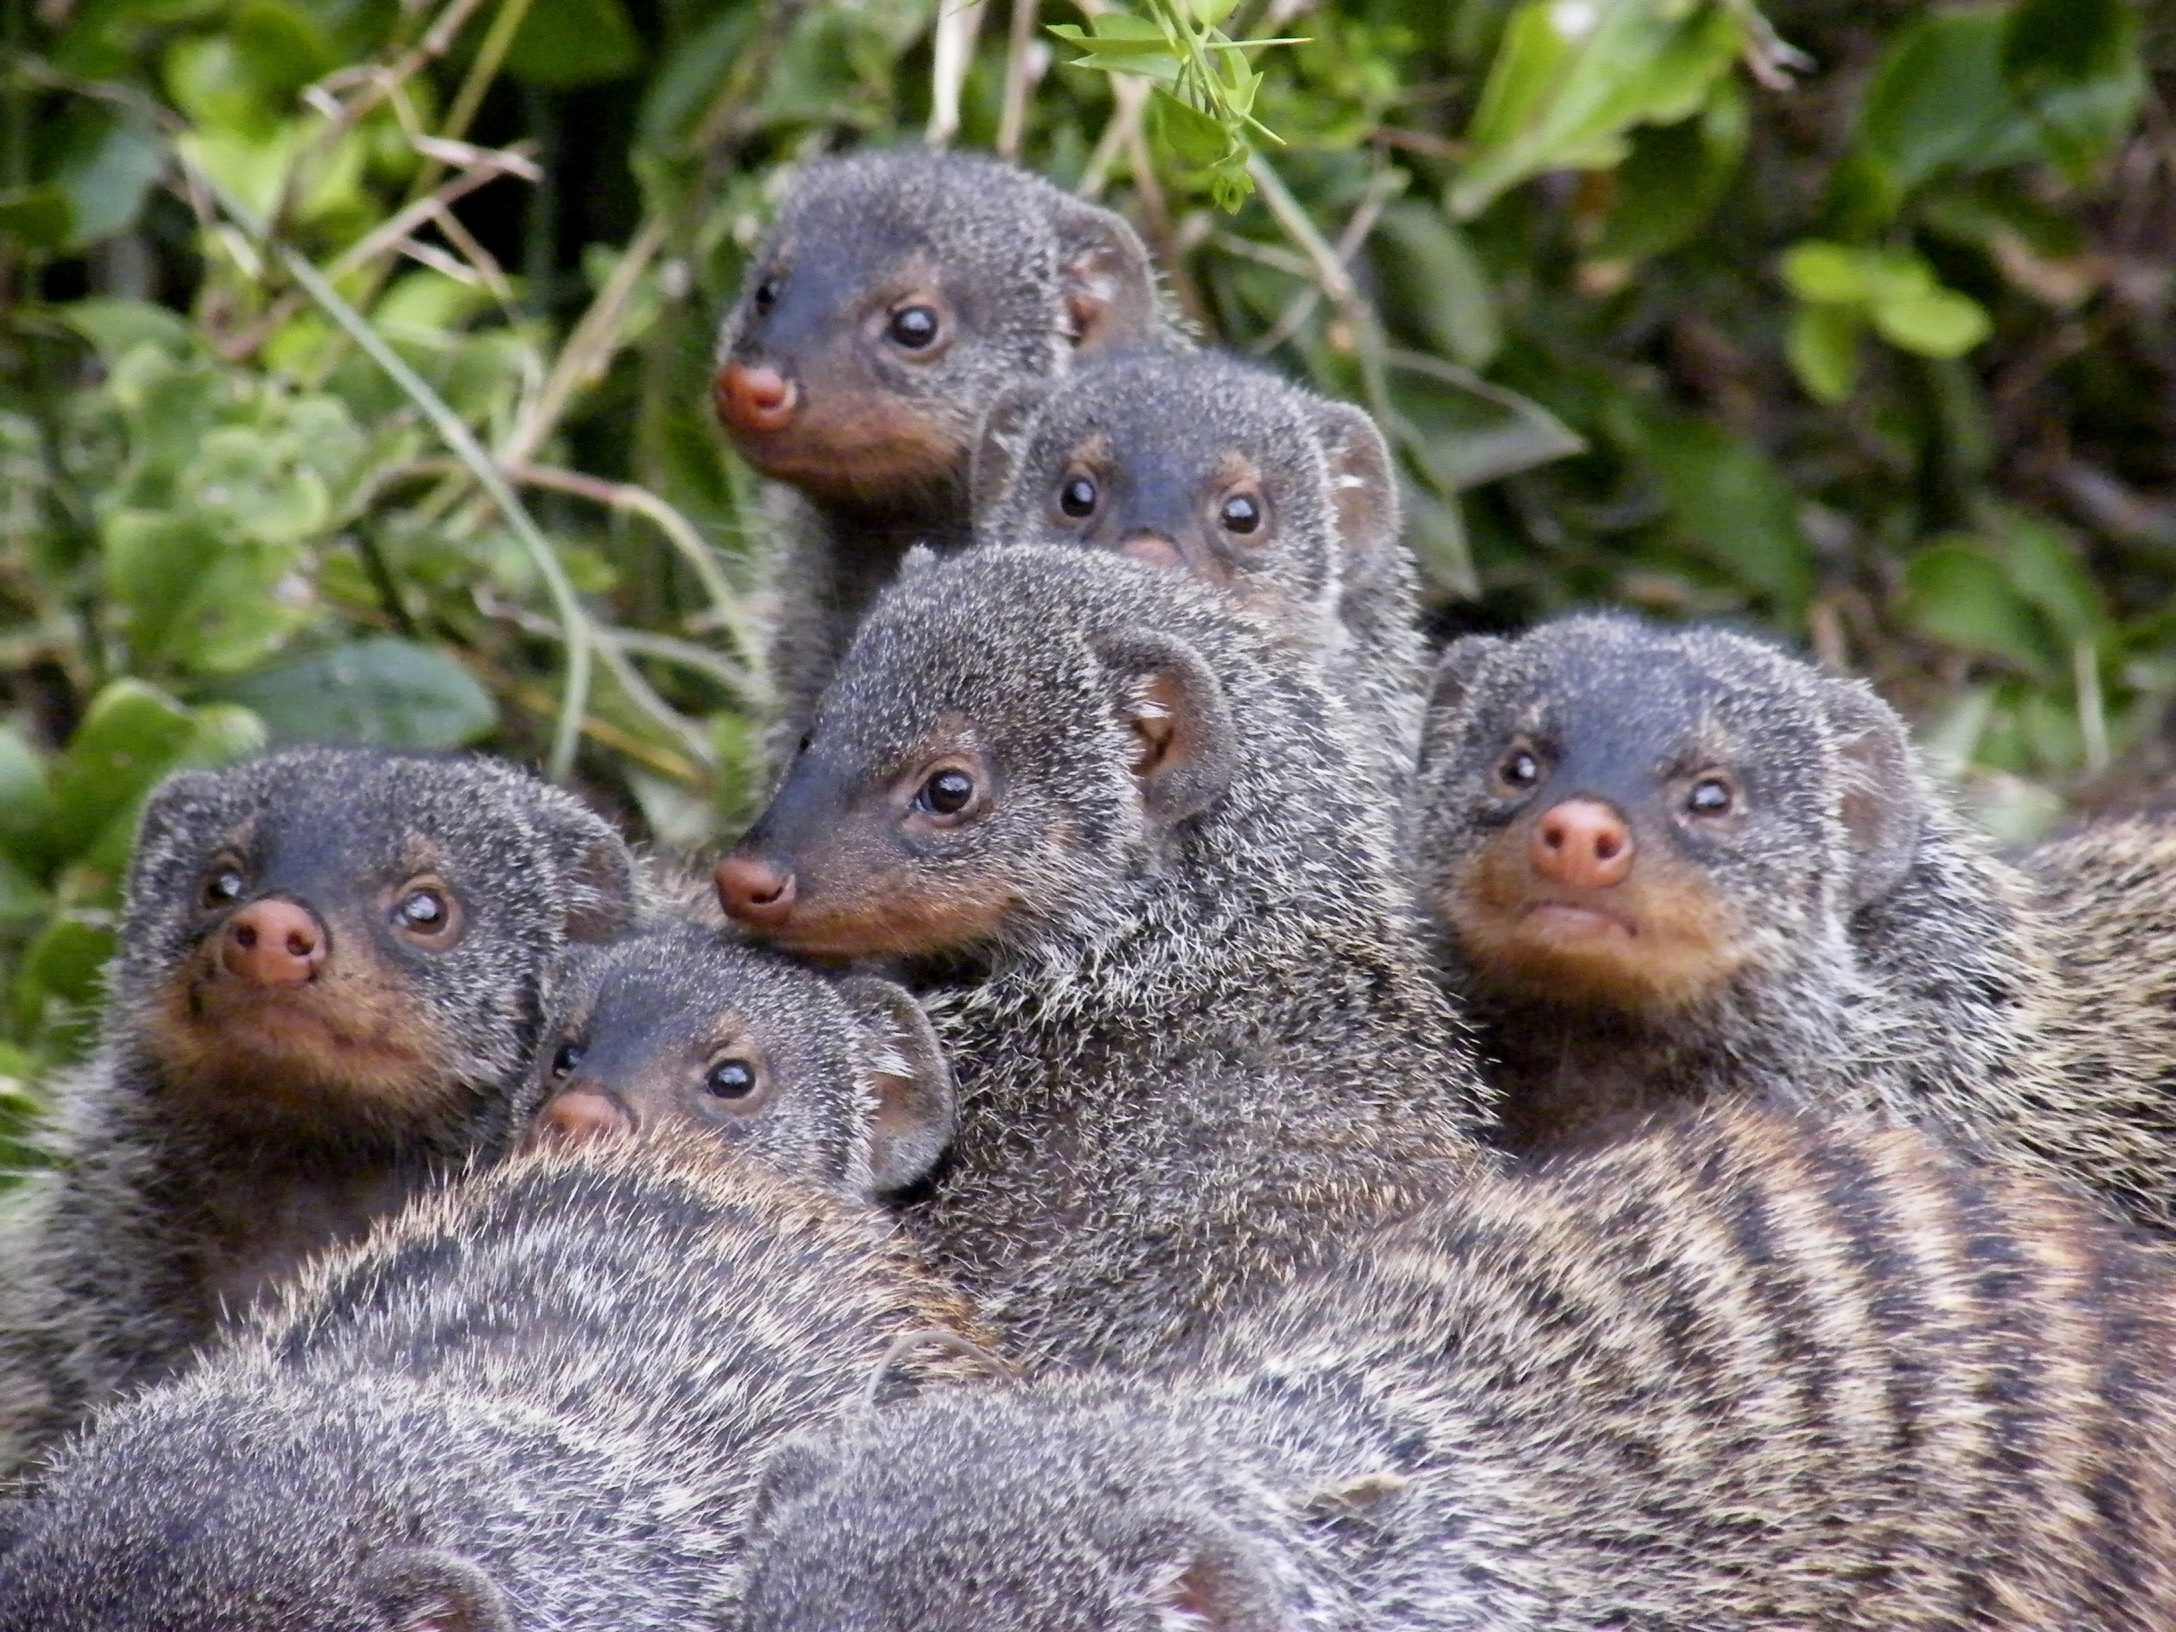 Banded mongooses avoid mating with their nearest relatives, perhaps through sound or scent.